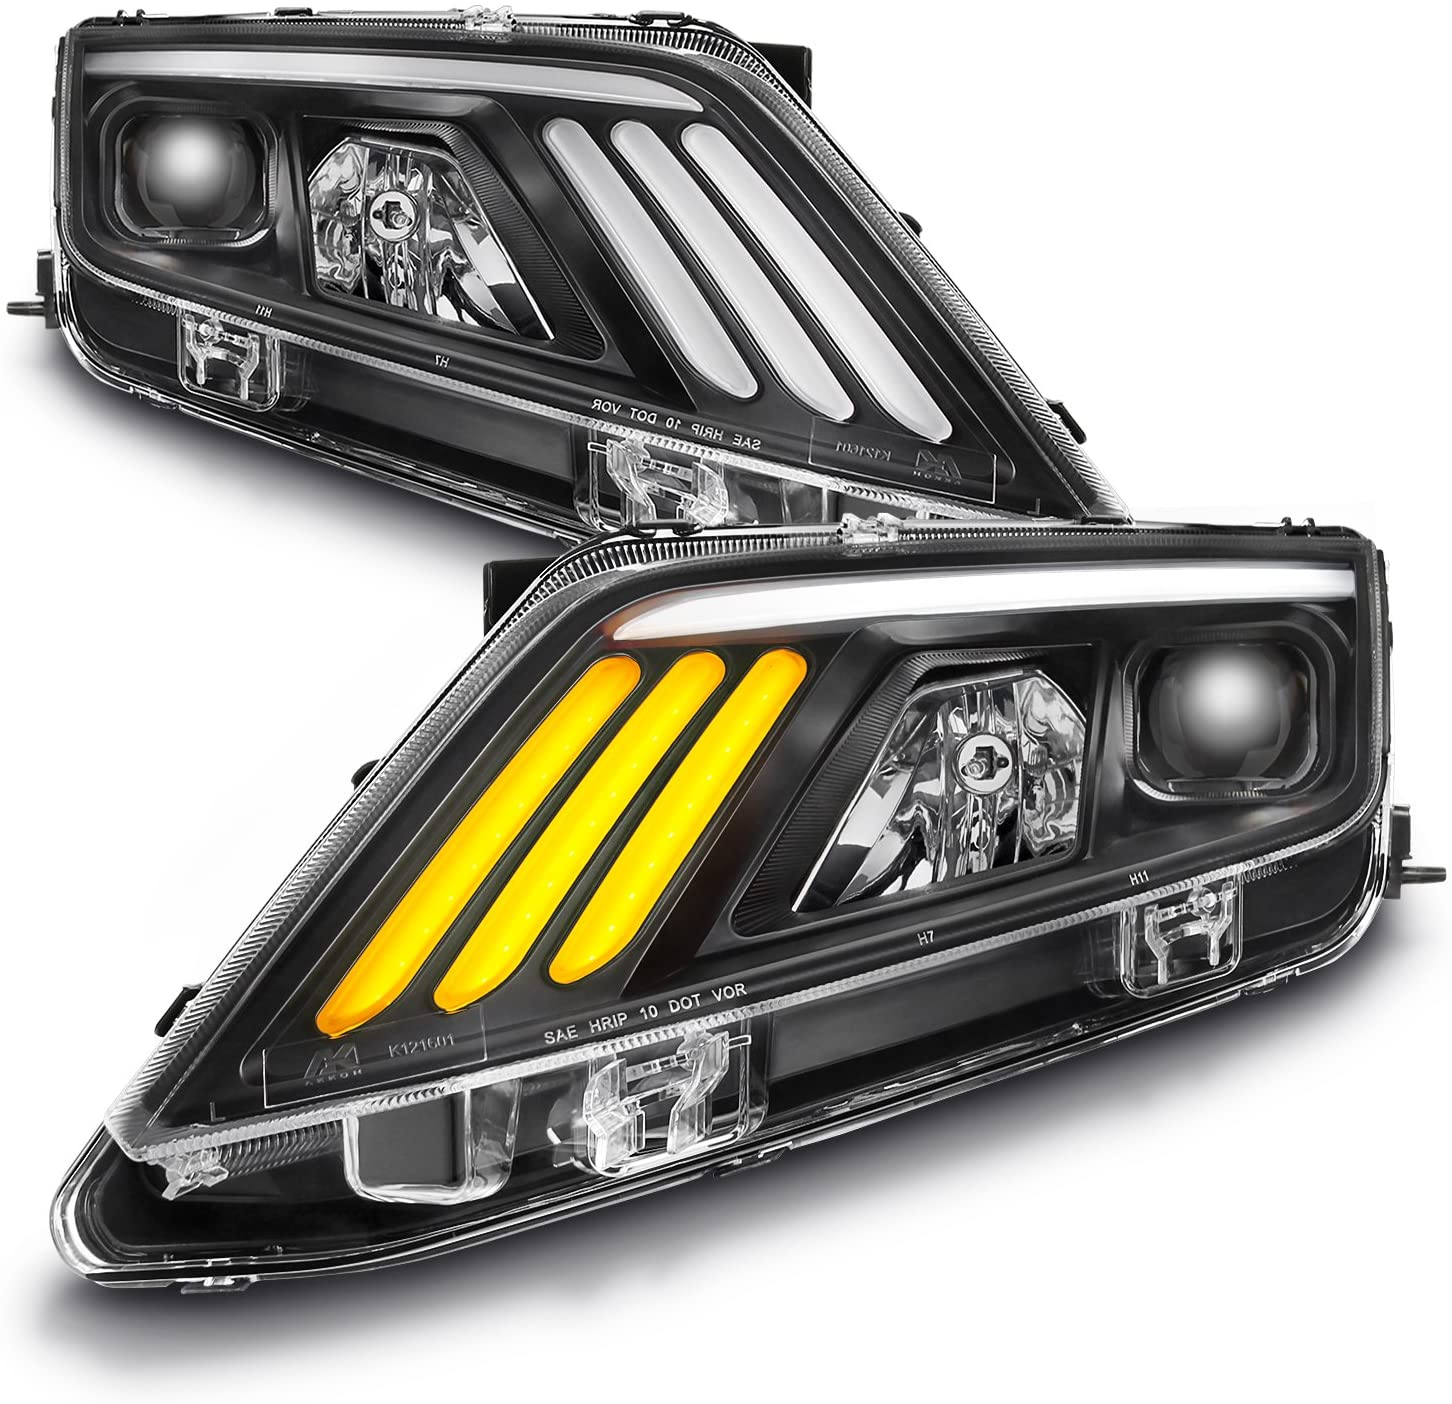 For 2010 11 12 Ford Fusion LED Daytime Running Lamp Strip Projector Headlights w/Sequential Turn Signal Black Housing Set